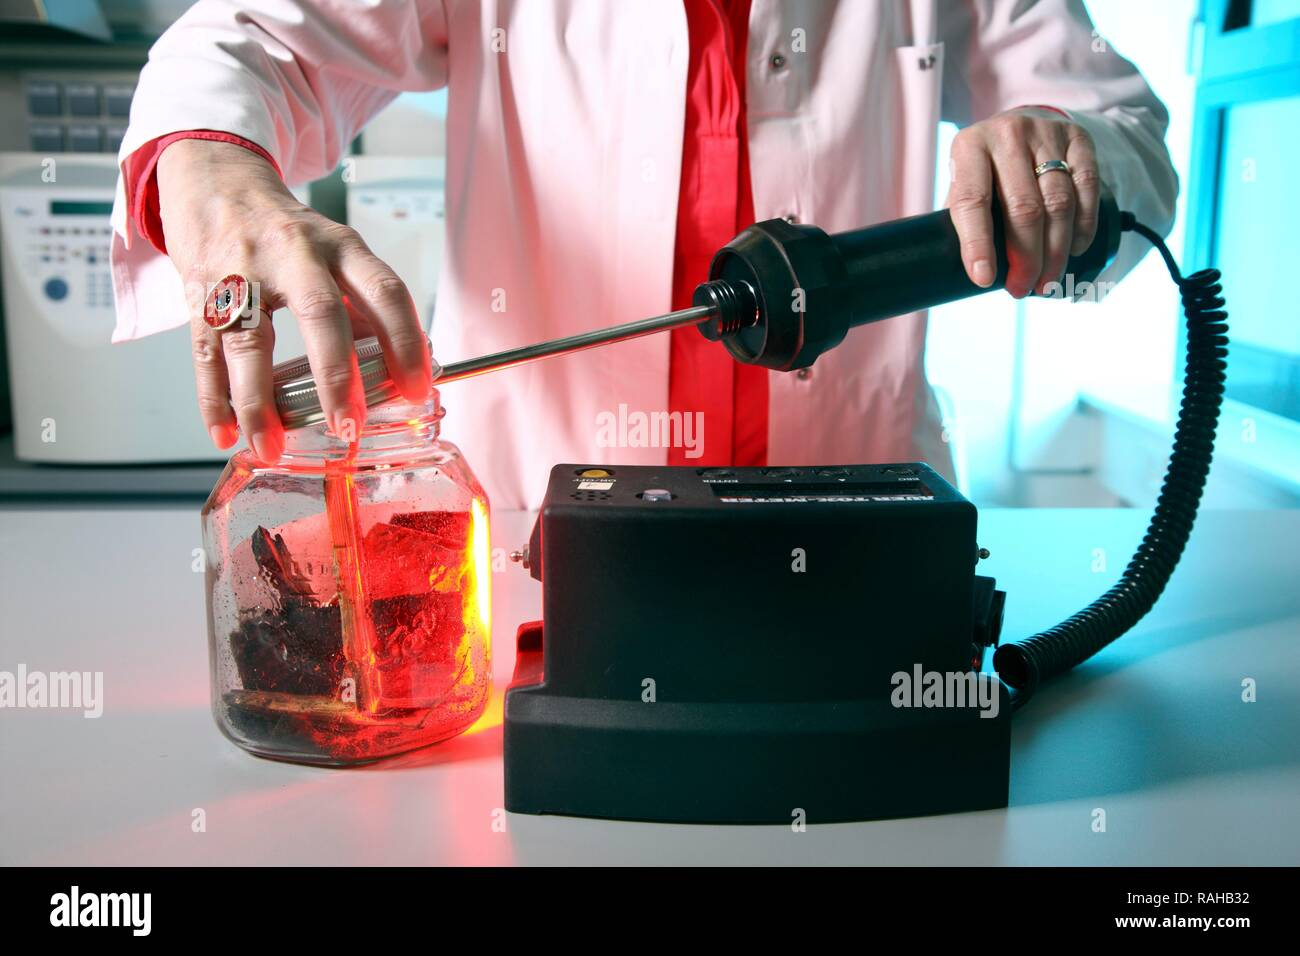 Forensic Science And Officer High Resolution Stock Photography And Images Alamy